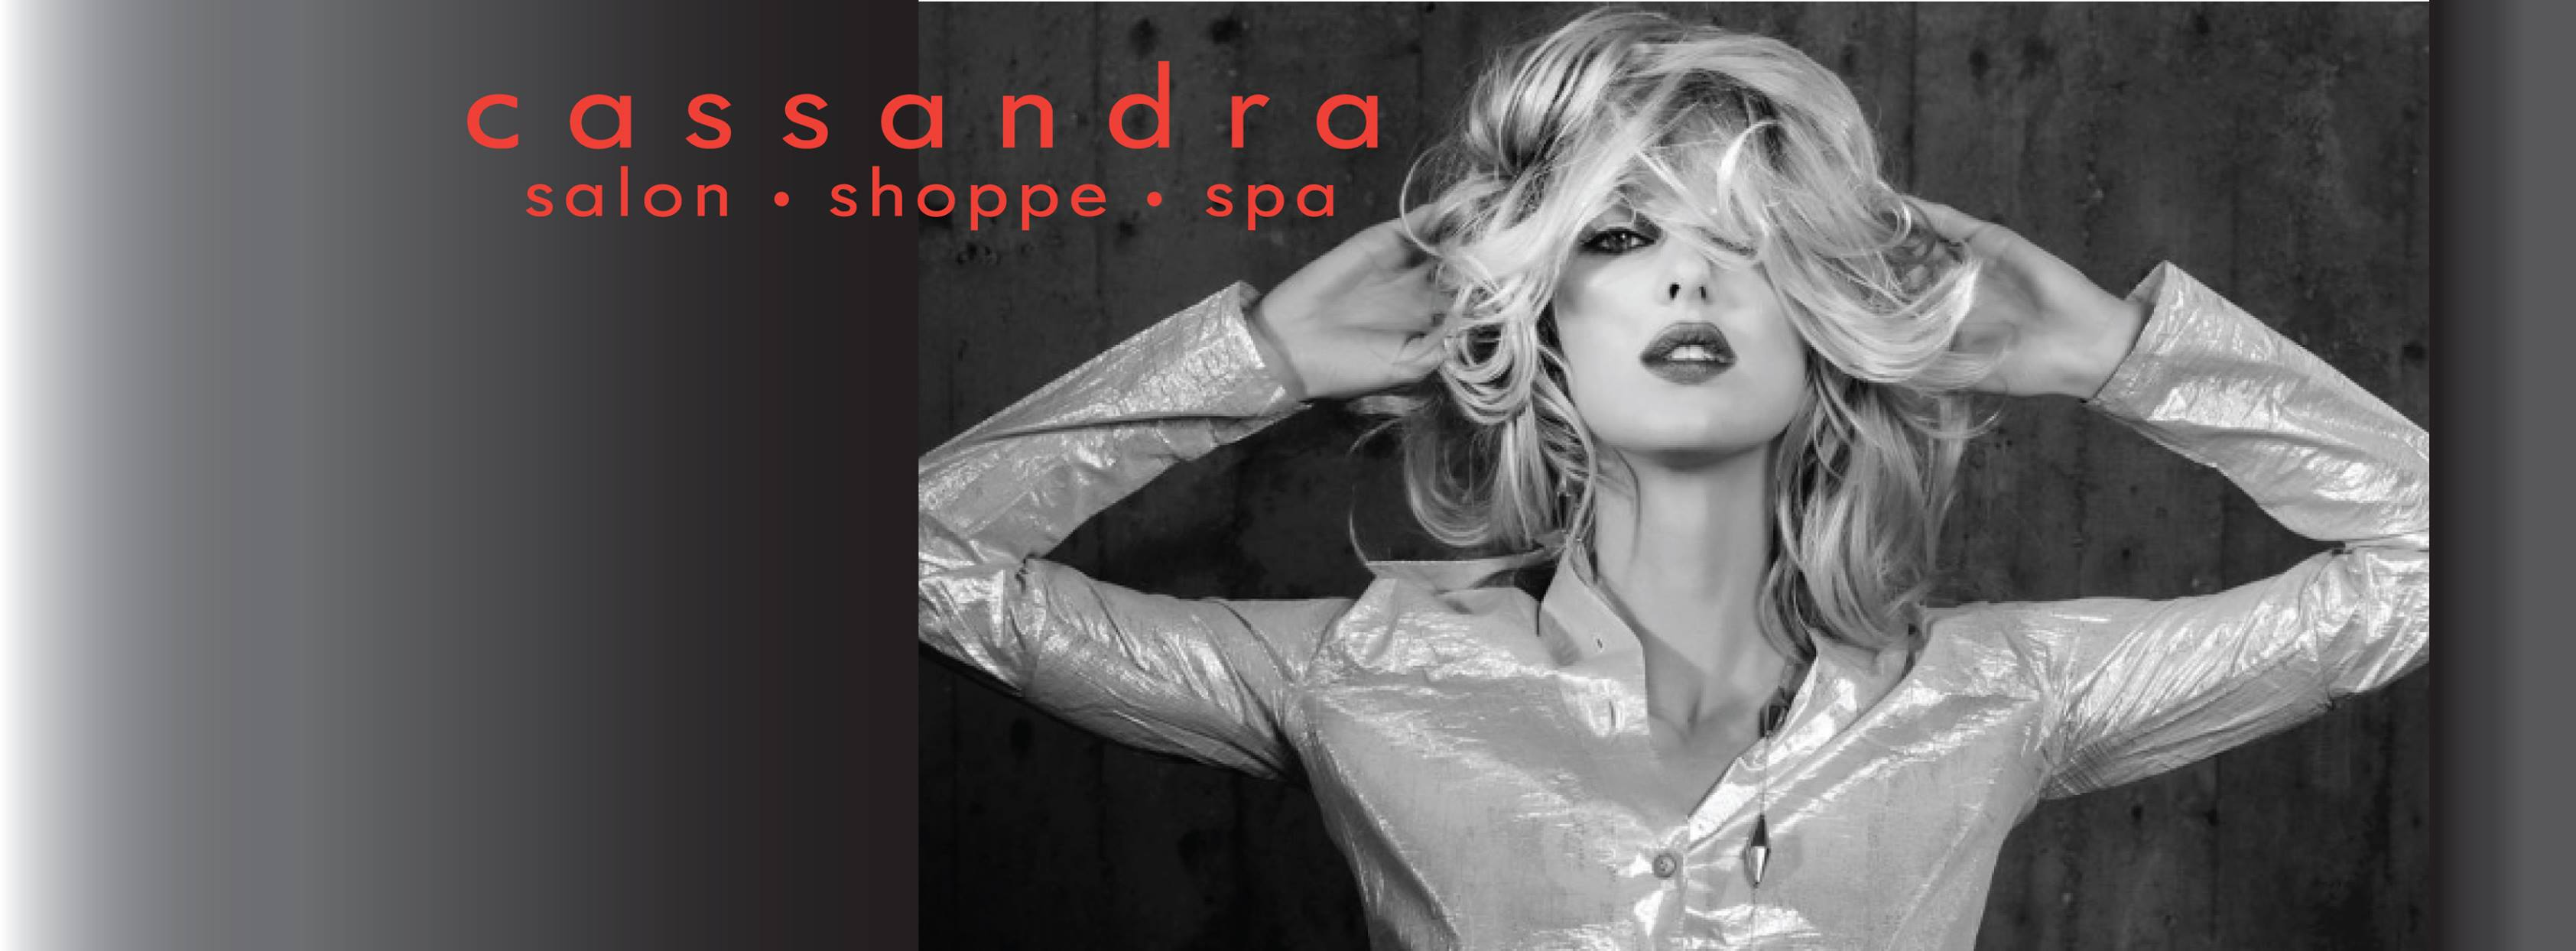 Cassandra Salon & Spa Logo